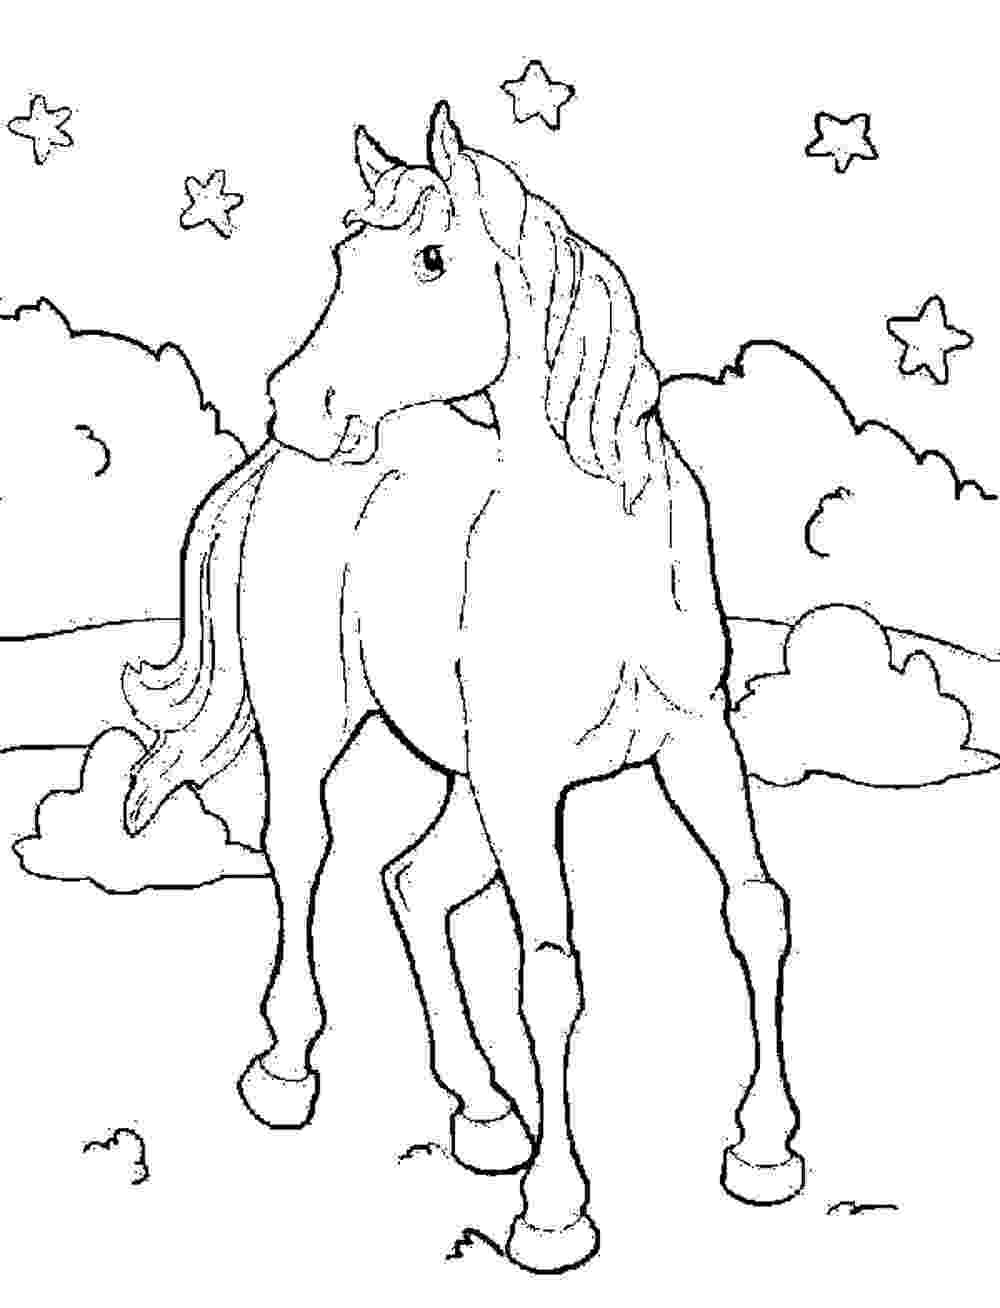 picture of a horse to color horse coloring pages for kids coloring pages for kids horse picture of to color a